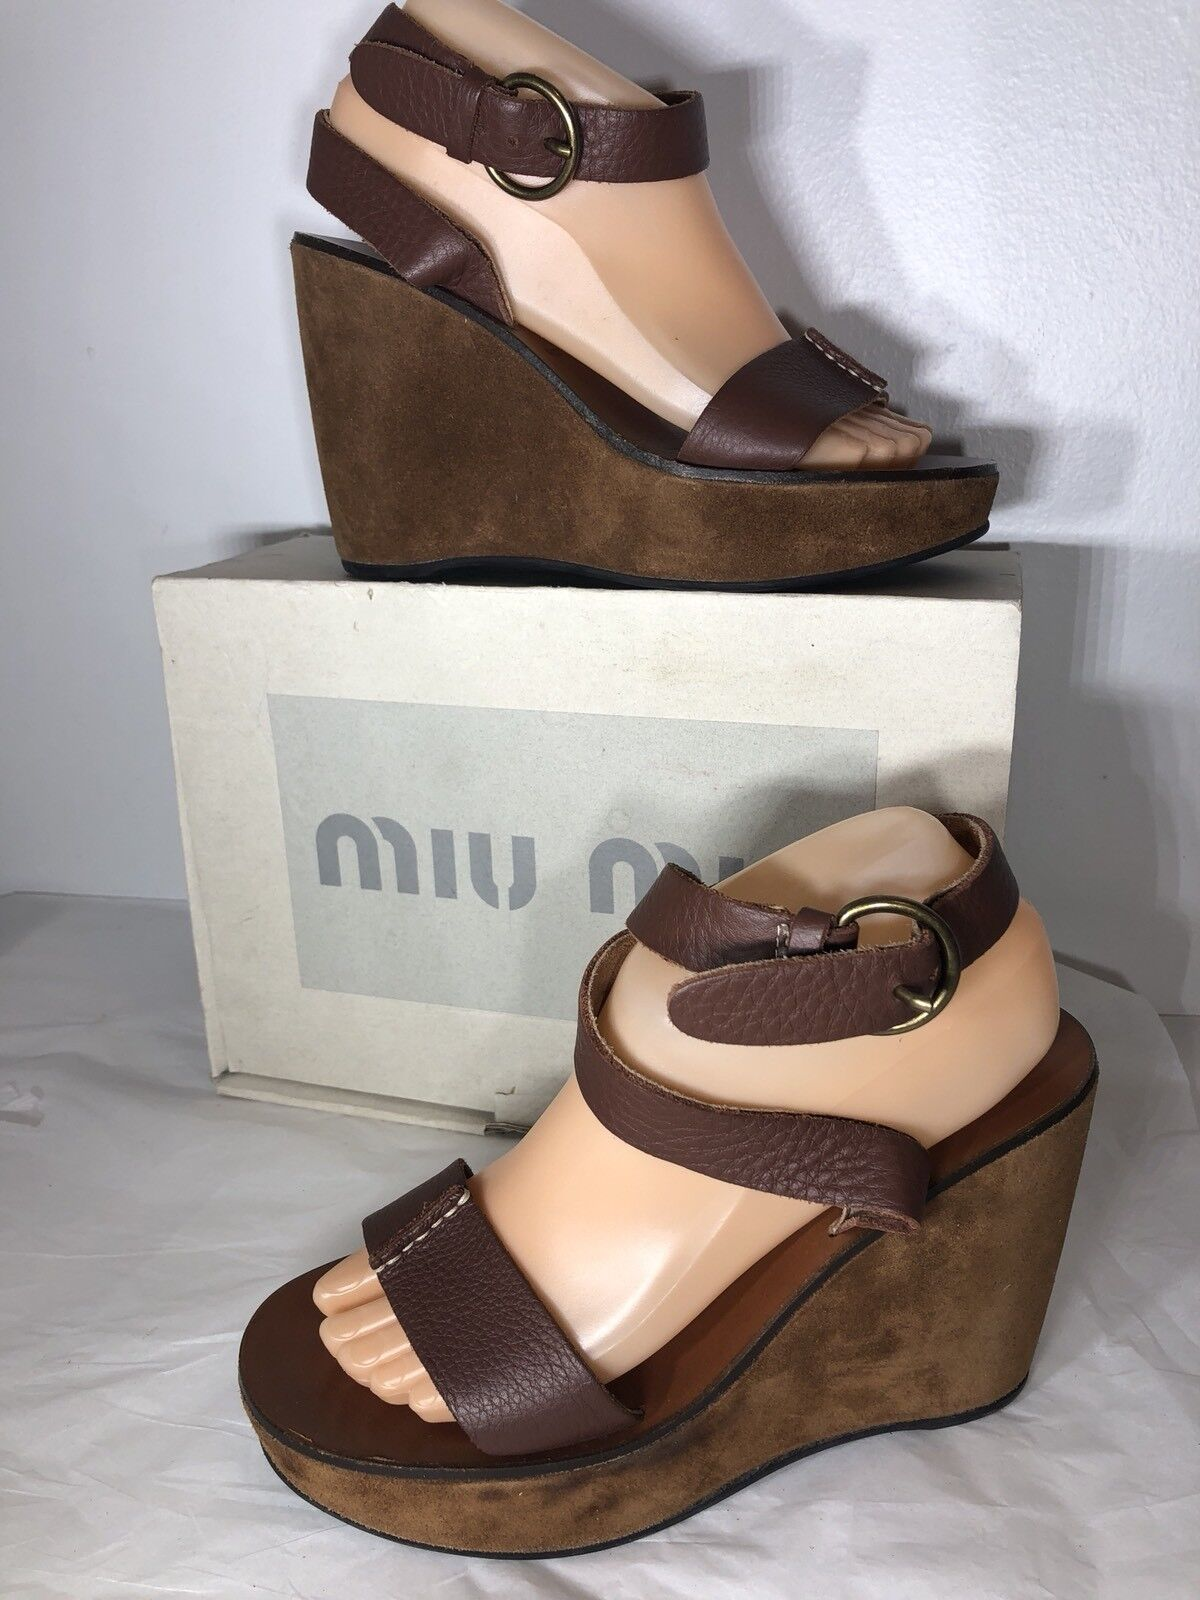 MIU MIU Size 38.5 Brown Pelle Ankle Strap Wedge Sandals -Italy